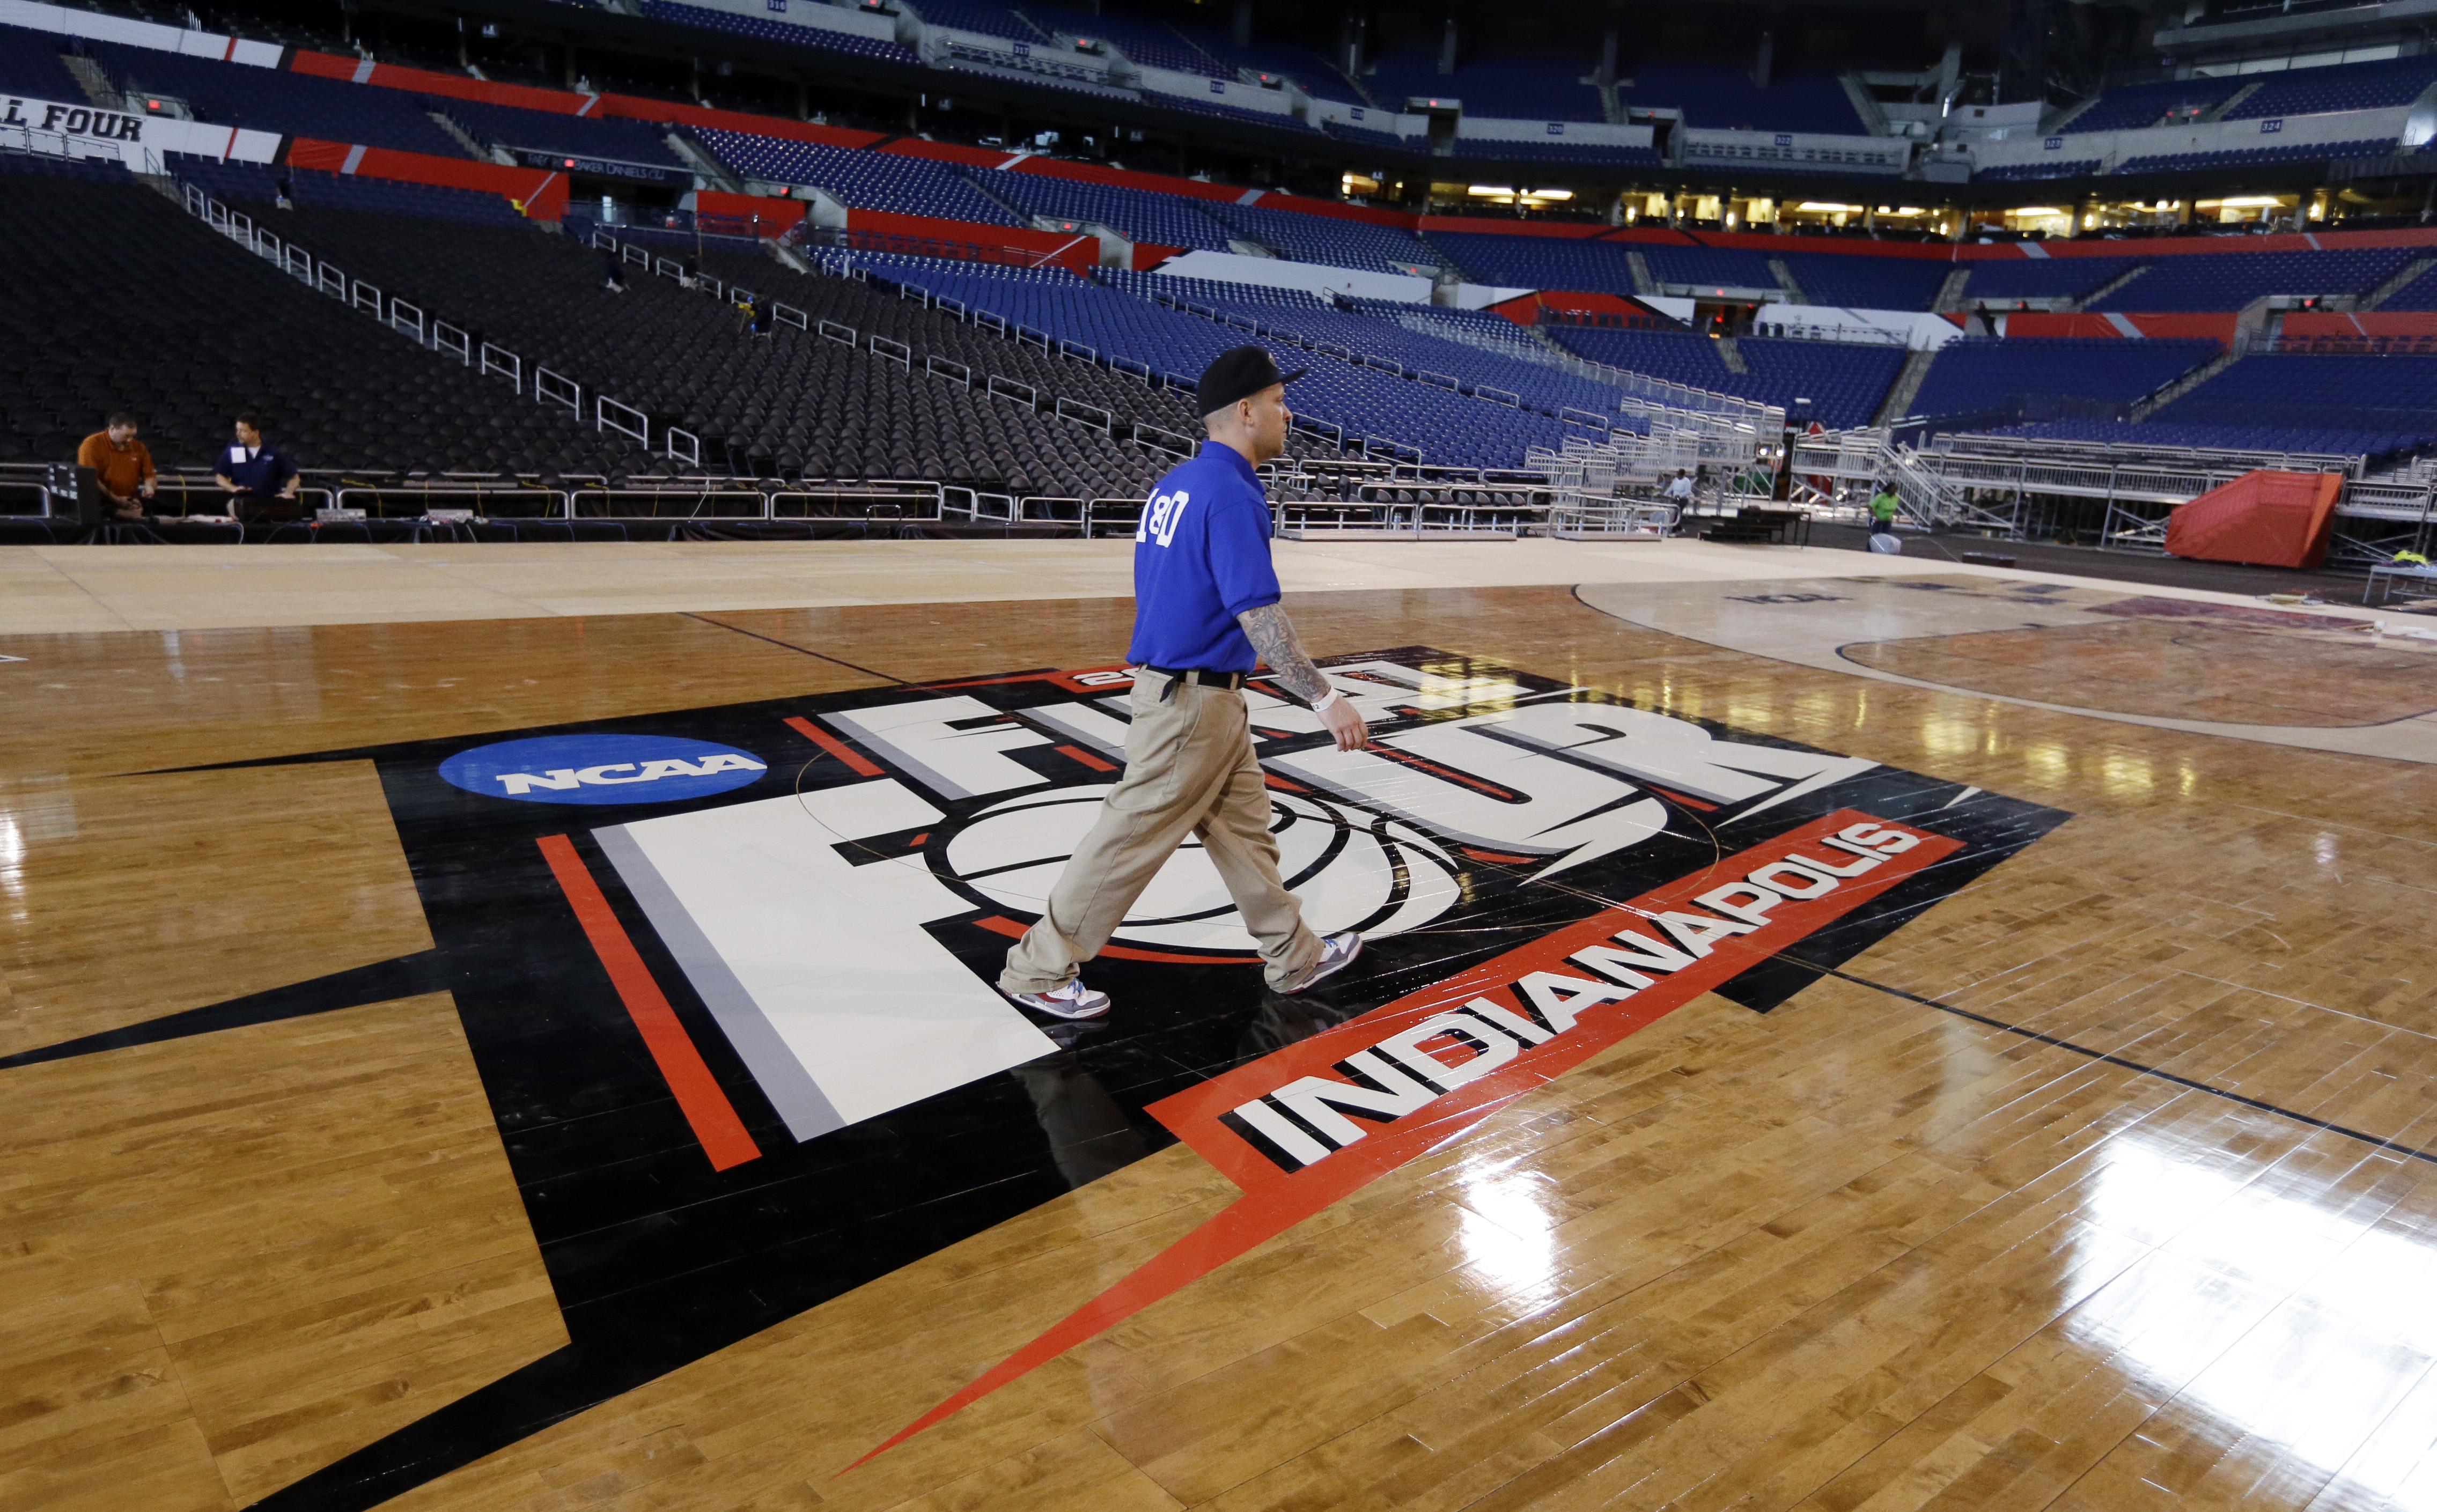 A worker crosses the Logo at center court as workers at Lucas Oil Stadium install the court in Indianapolis, Friday, March 27, 2015, as they prepare to host the NCAA Final Four college basketball games on April 4 and 6. (AP Photo/Michael Conroy)